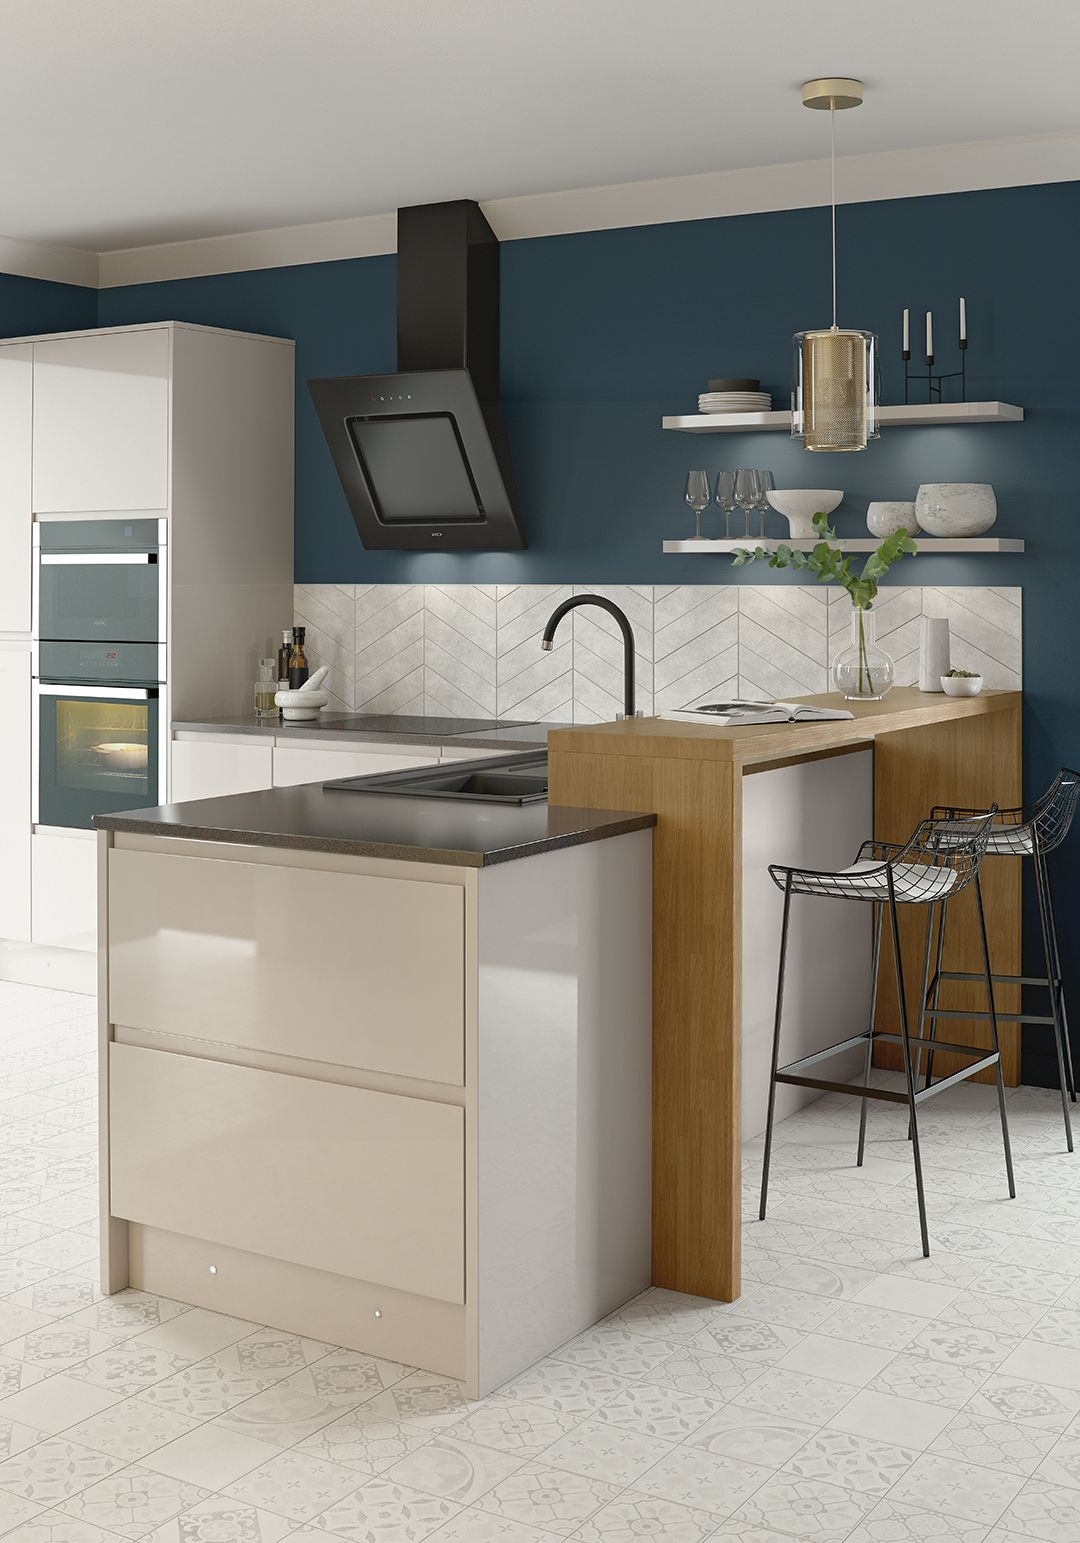 The Miller kit+kaboodle kitchen range from Homebase is